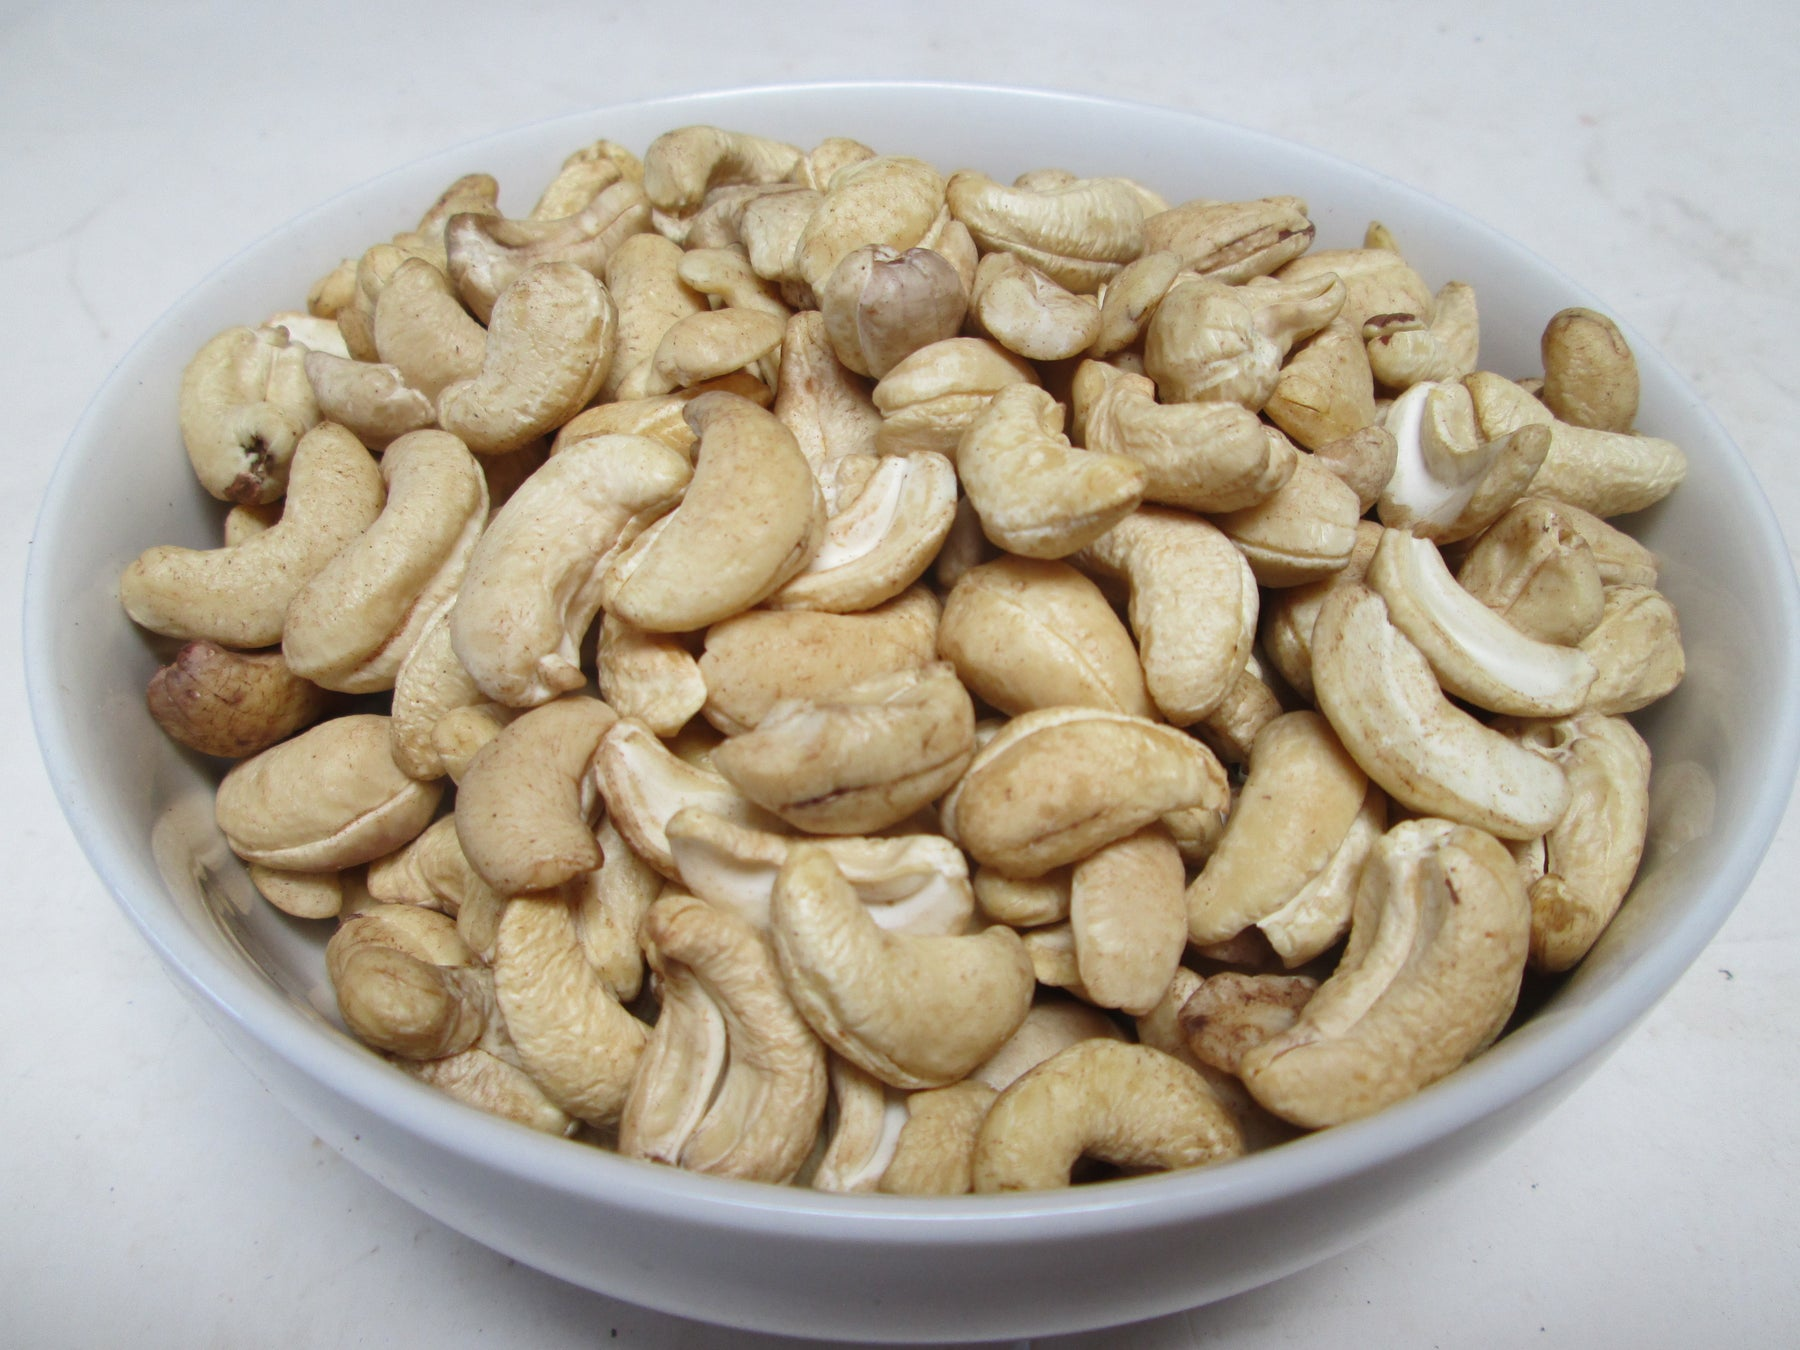 Organic Raw Whole Cashews, 25 lbs ($7.50/lb)